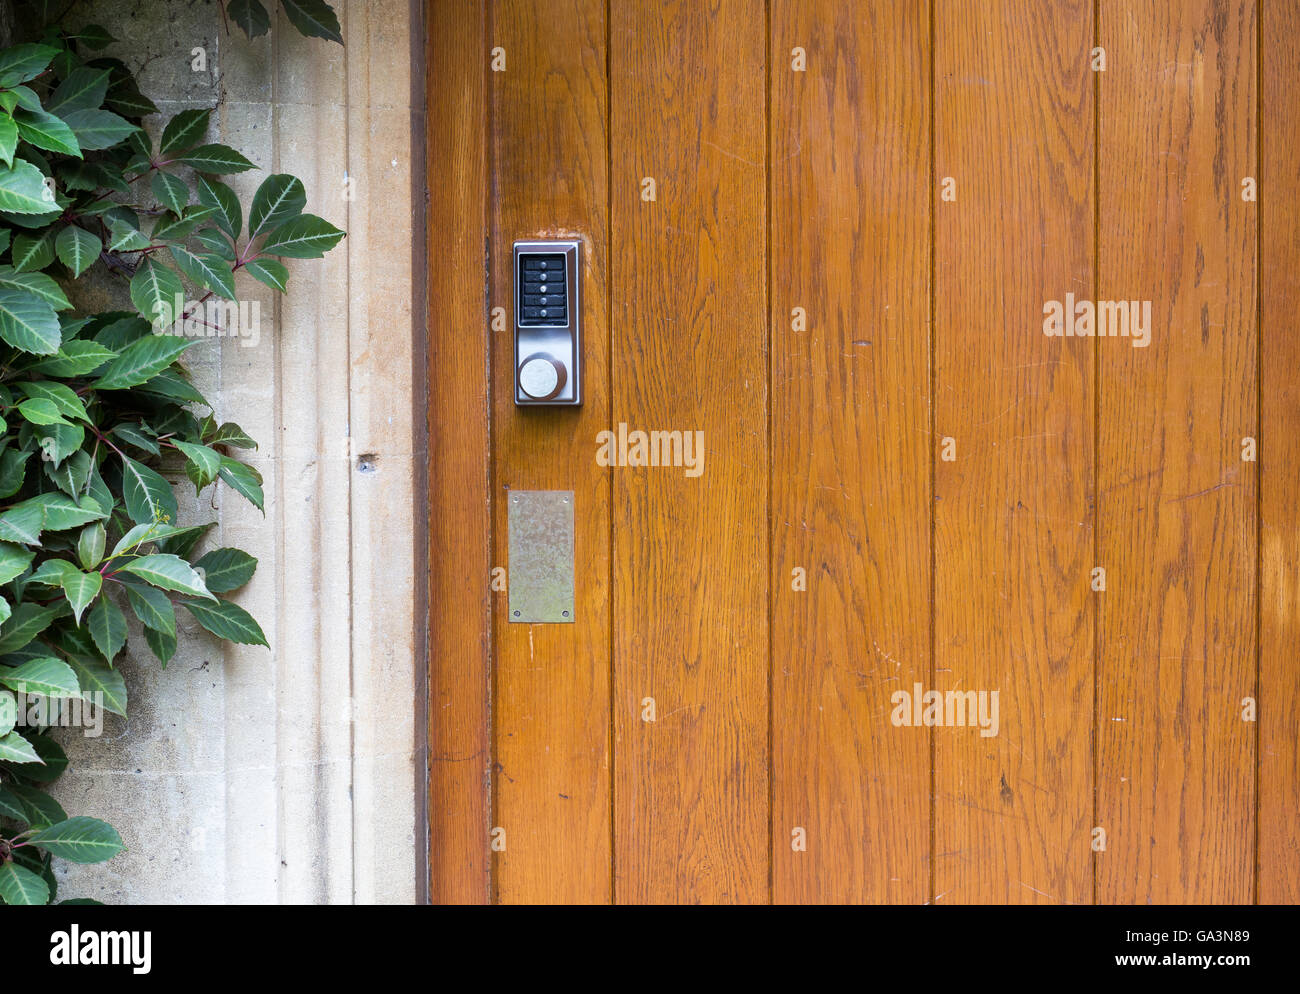 Simple door handle electronic lock with numeric buttons on old wooden door - Stock Image